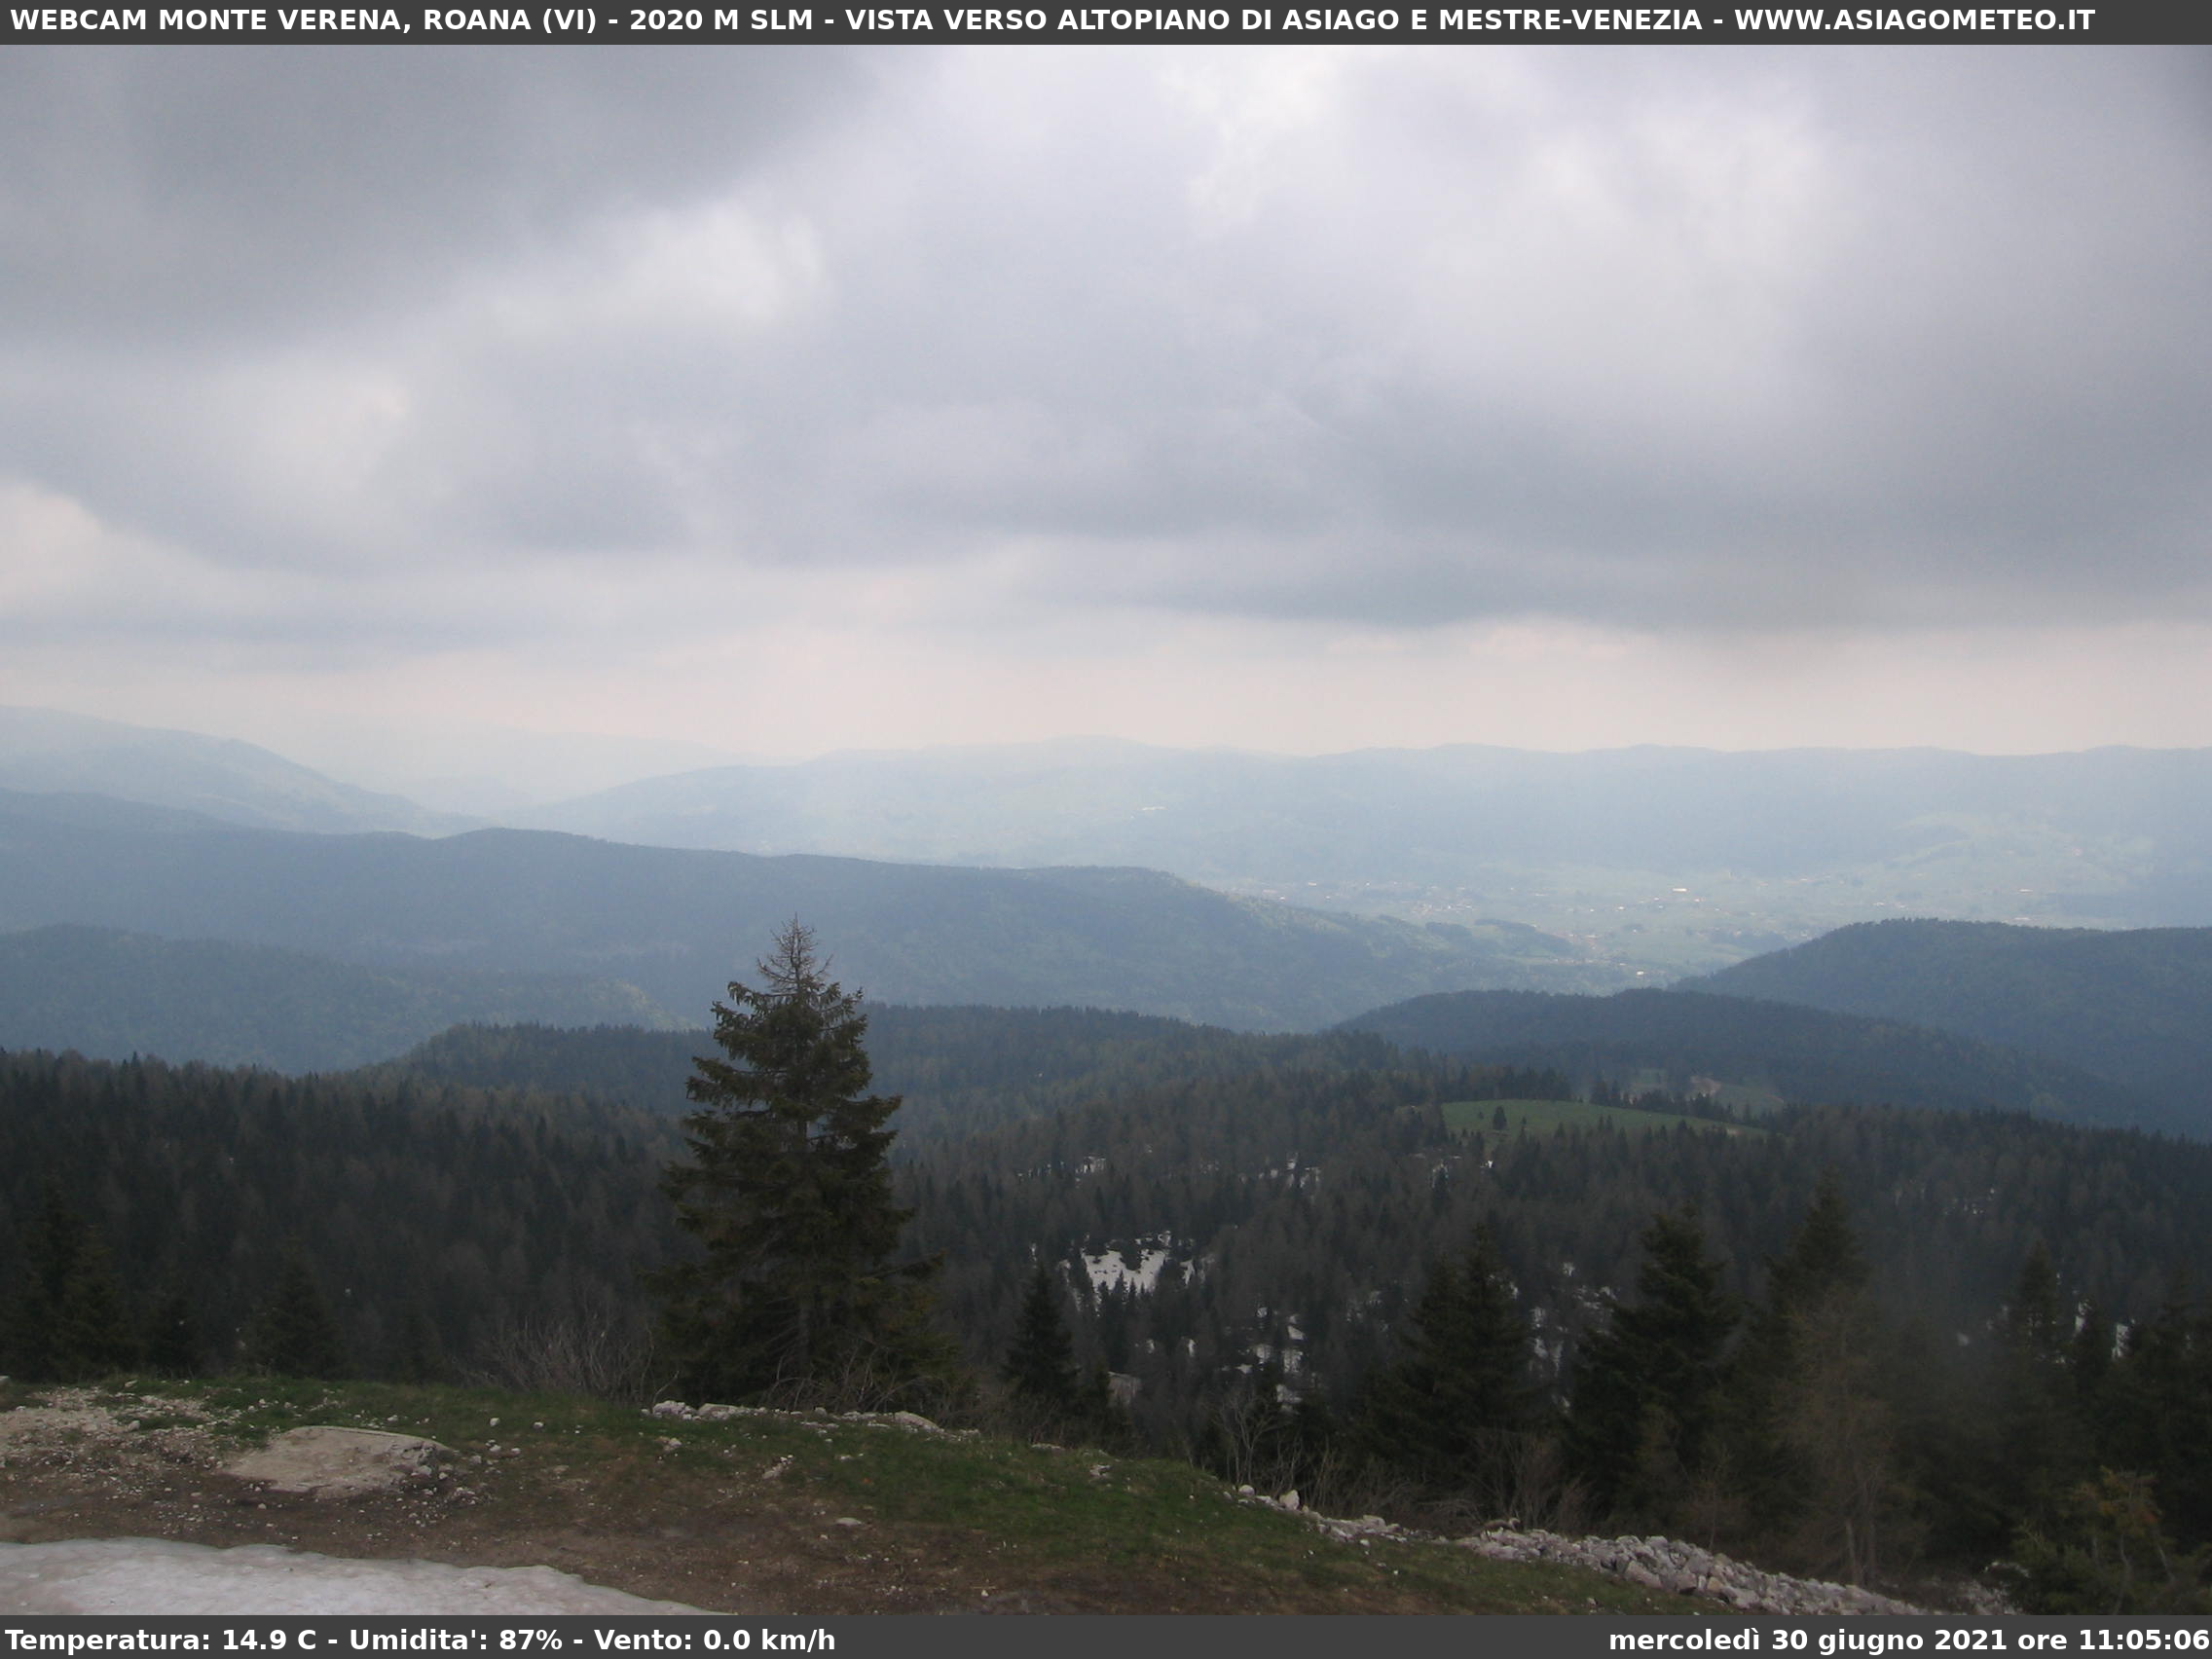 Webcam Monte Verena 2020 slm